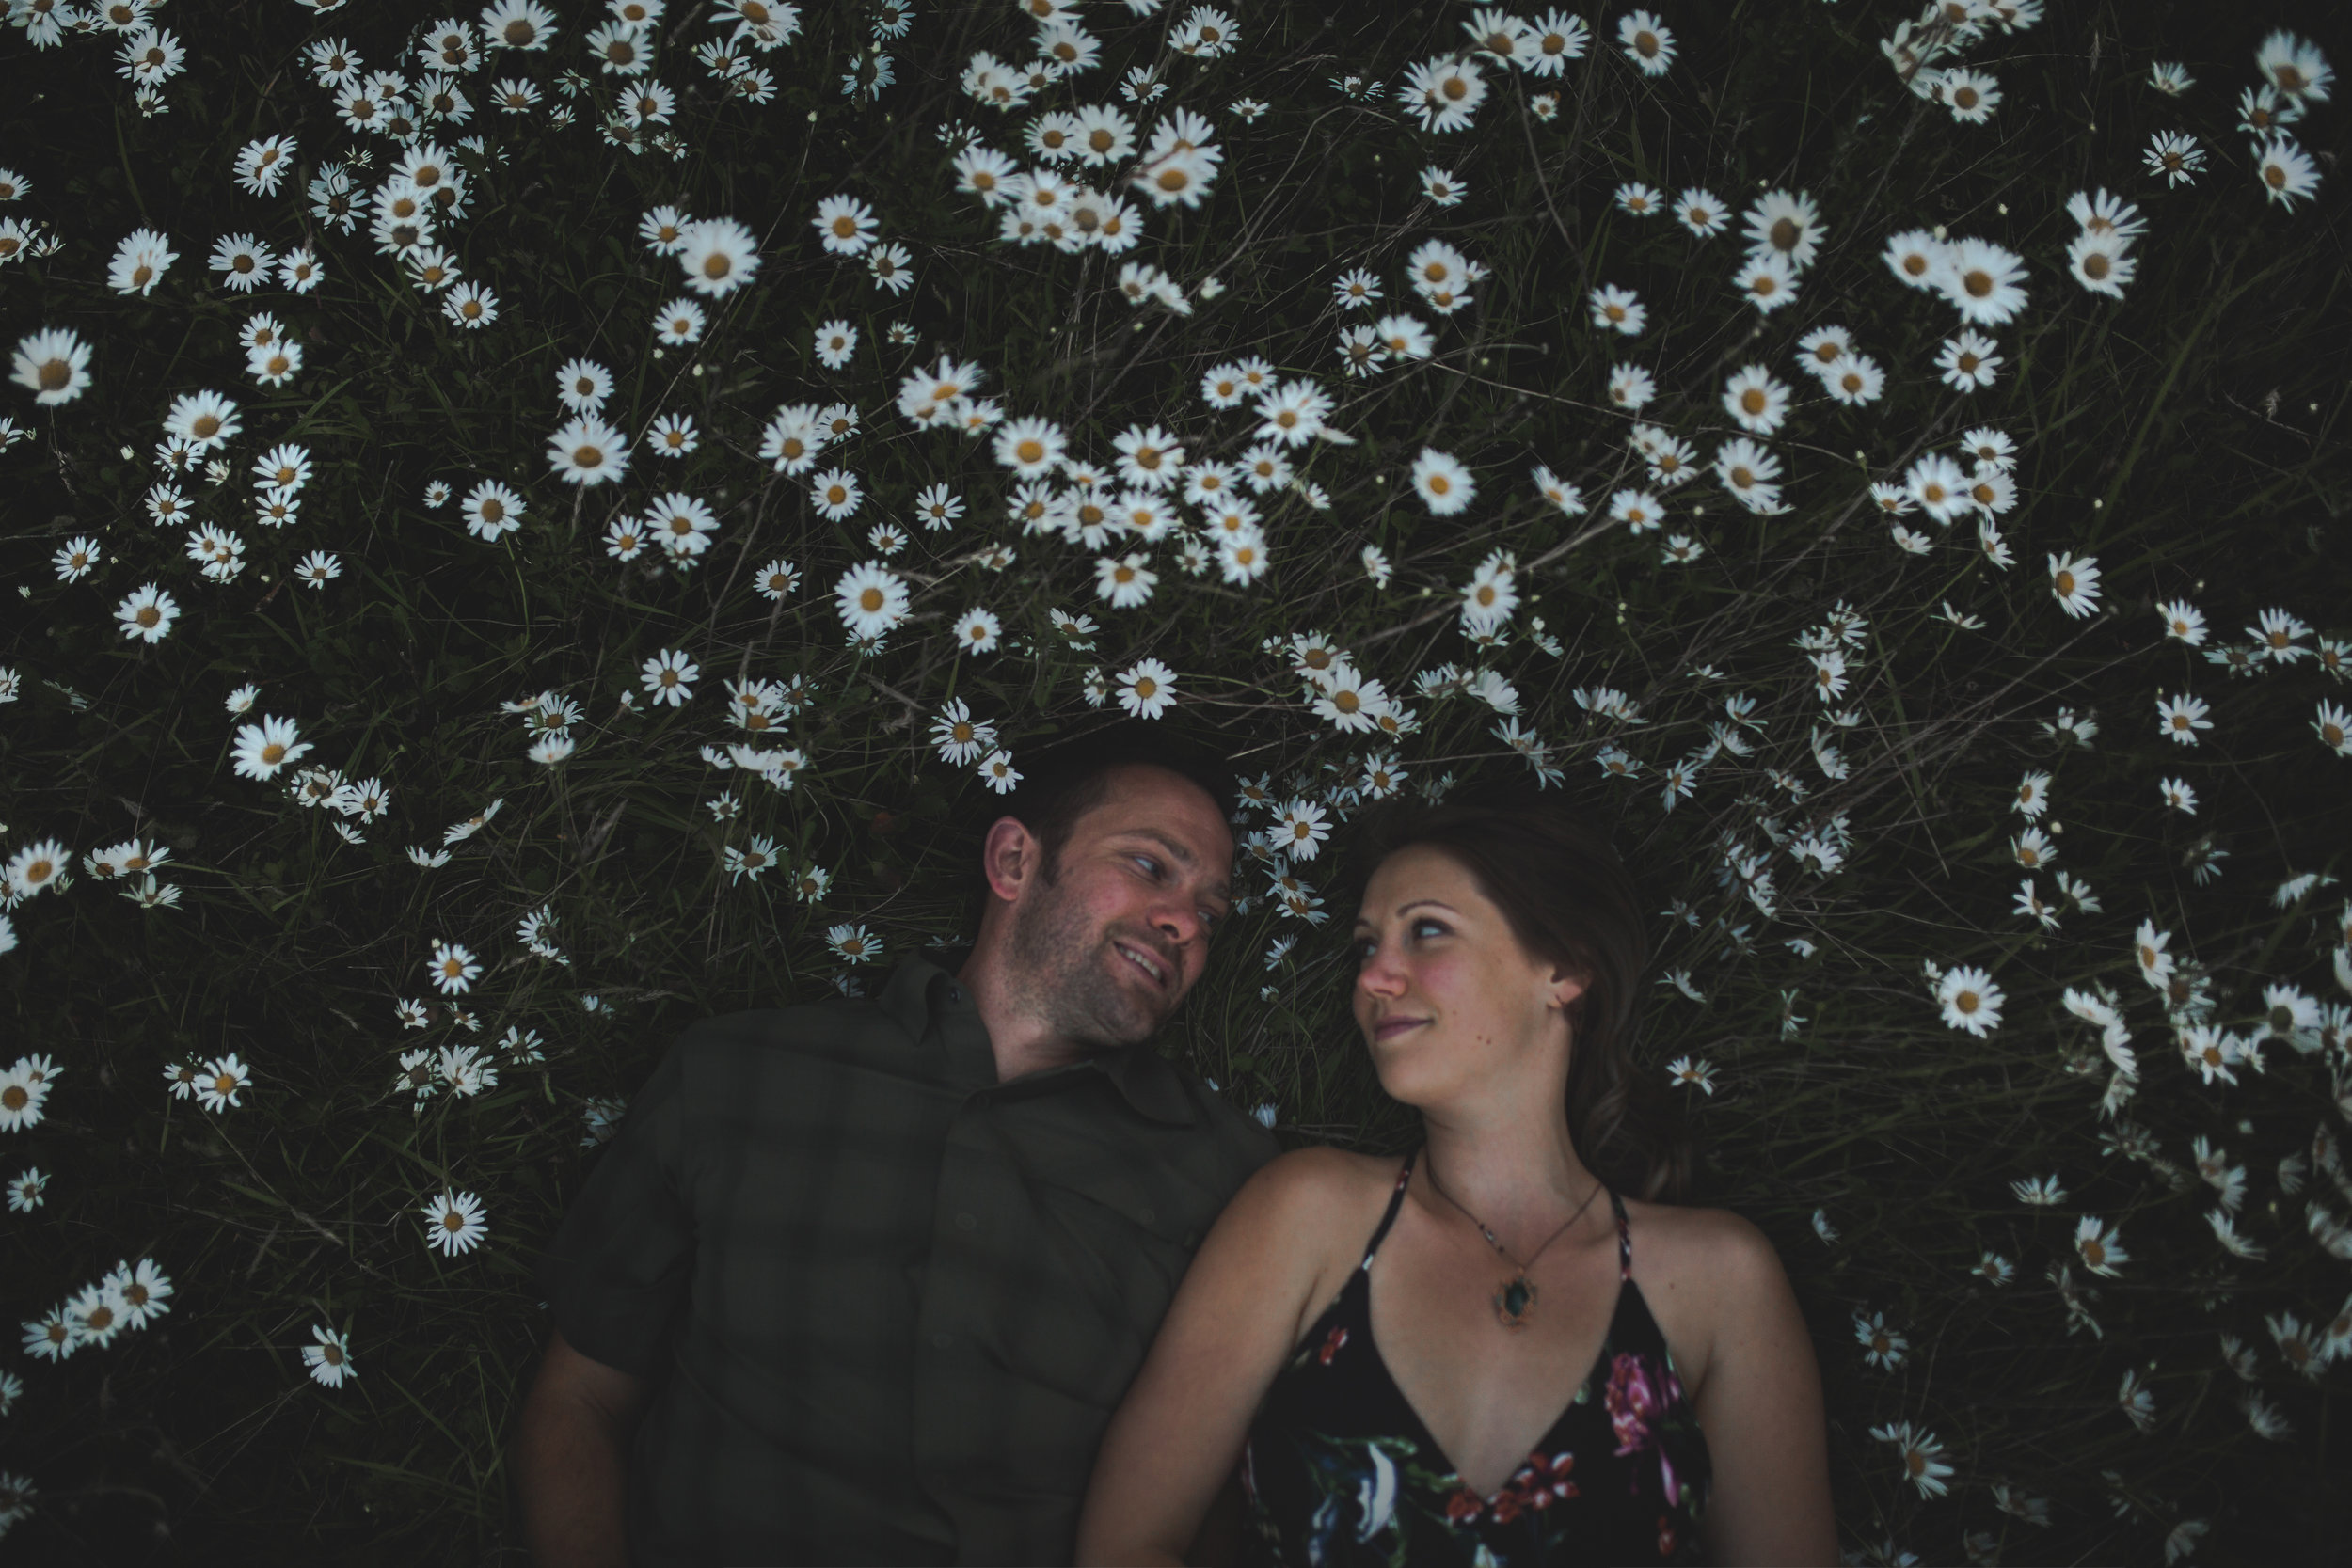 10-Adam-Ziorio-Photography-Engagement-Hangoutsession-East-Sooke-Park-Victoria-BC-Telsa&Willy.jpg